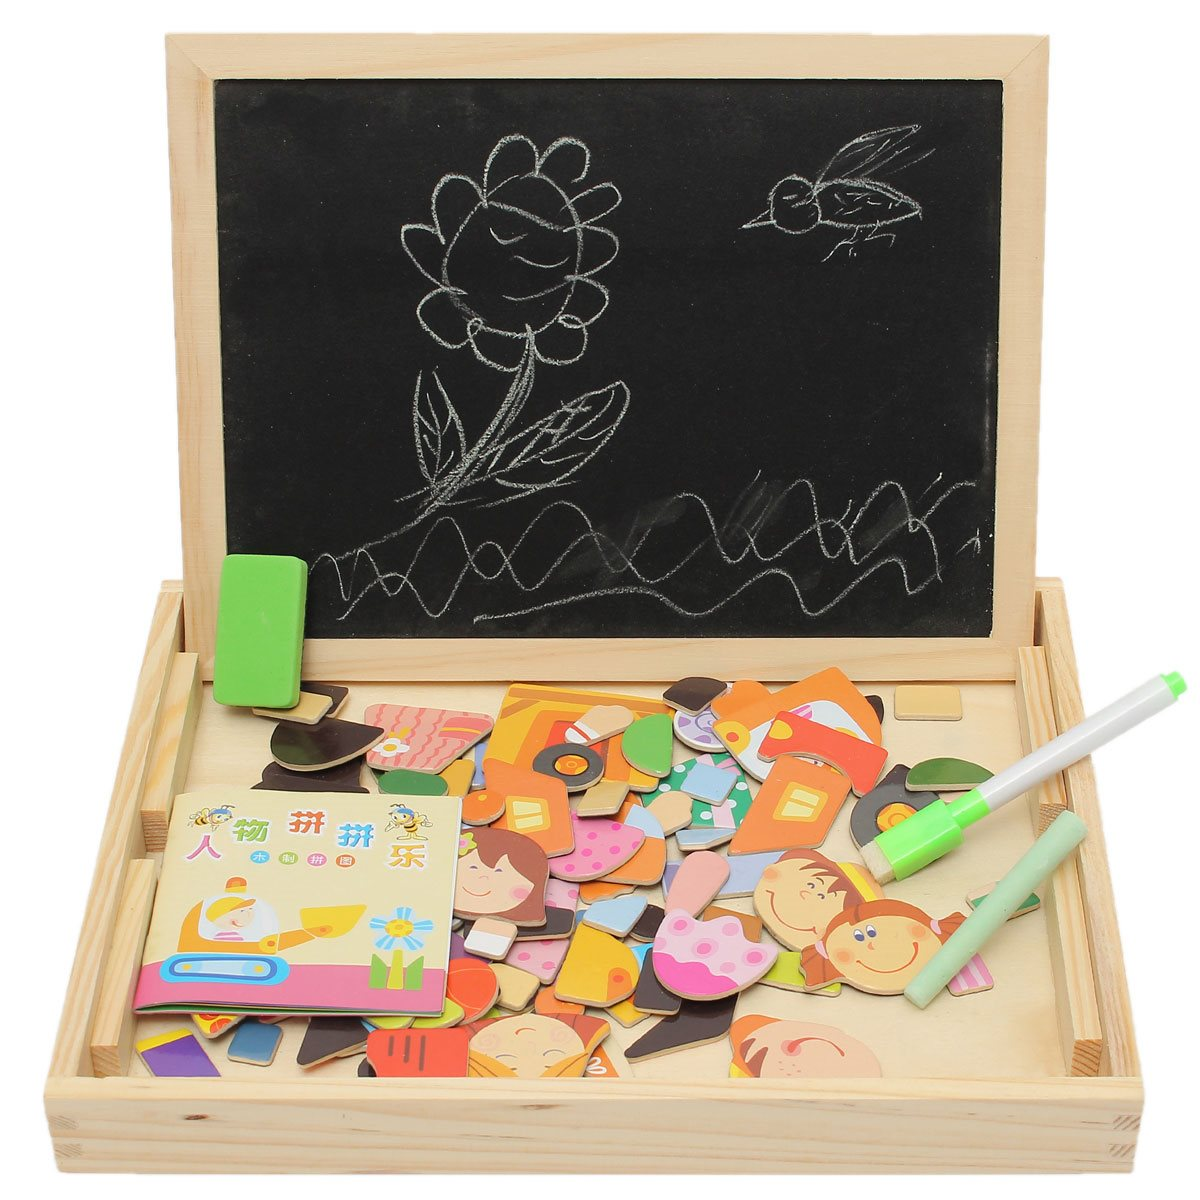 New-Arrival-Drawing-Writing-Board-Magnetic-Puzzle-Double-Easel-Kid-Wooden-Toy-Gift-Children-Intelligence-Development-Toy-3